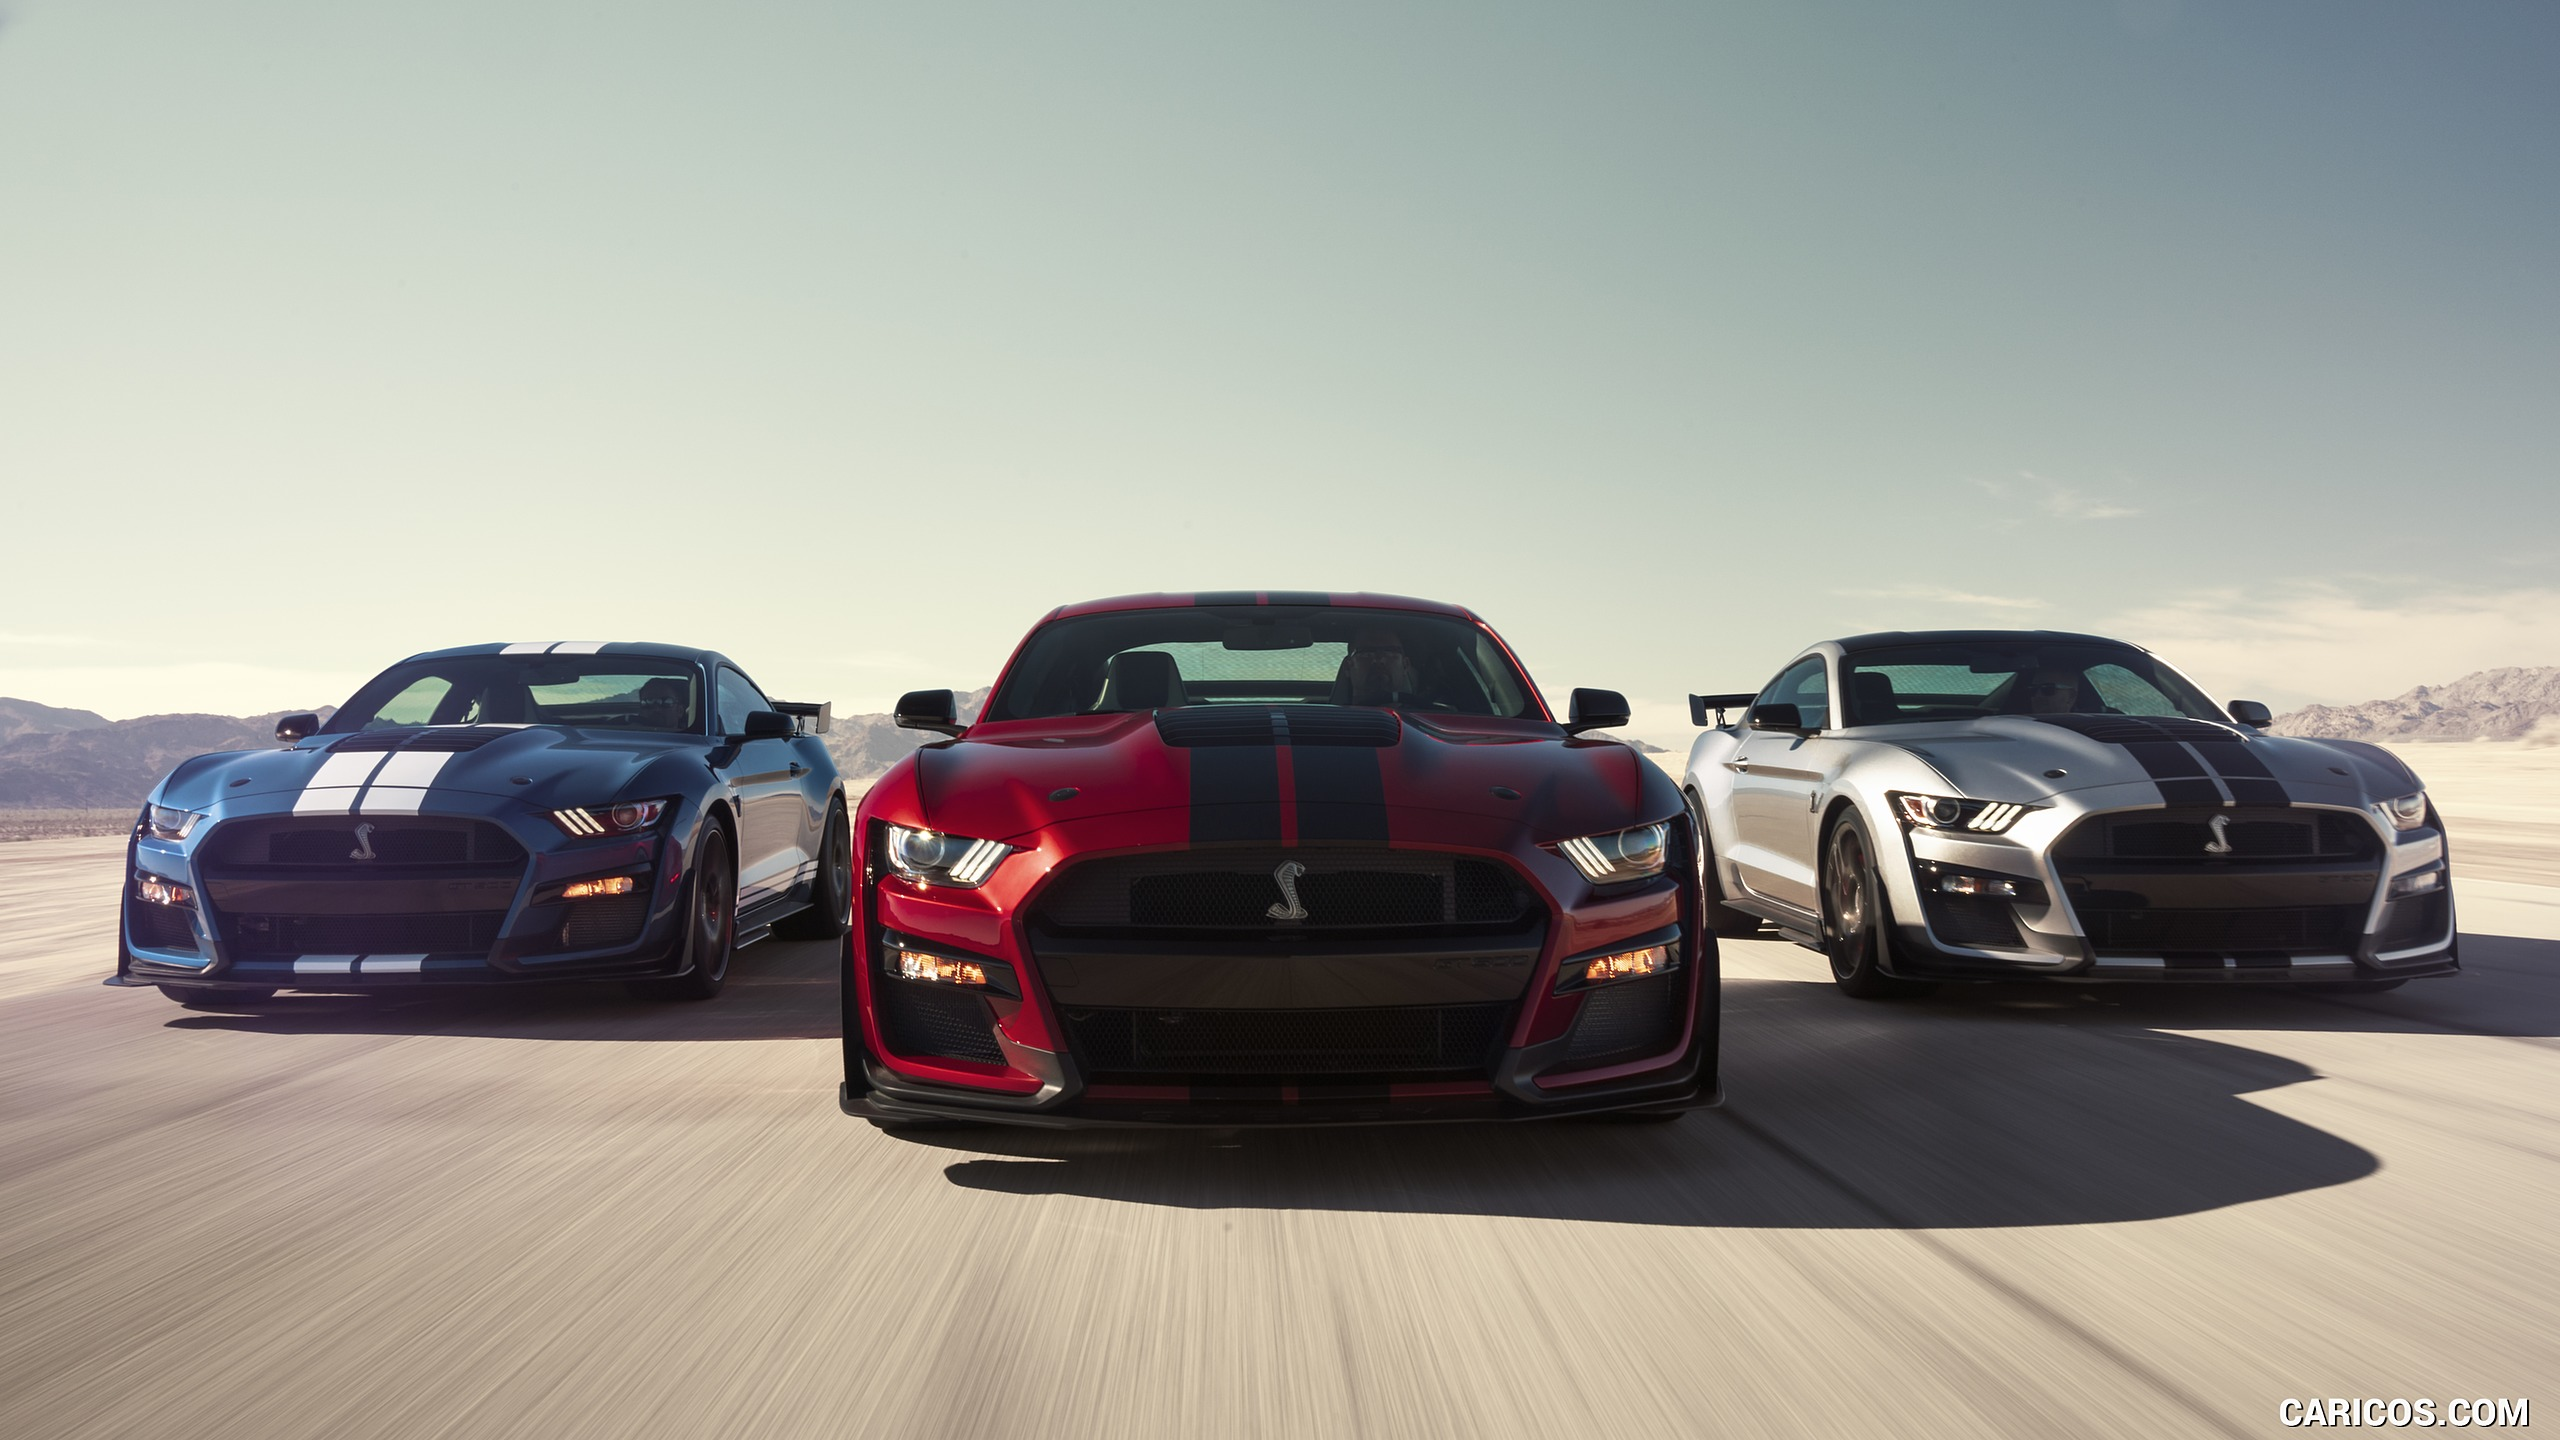 2560x1440 - Ford Mustang GT500 Wallpapers 27